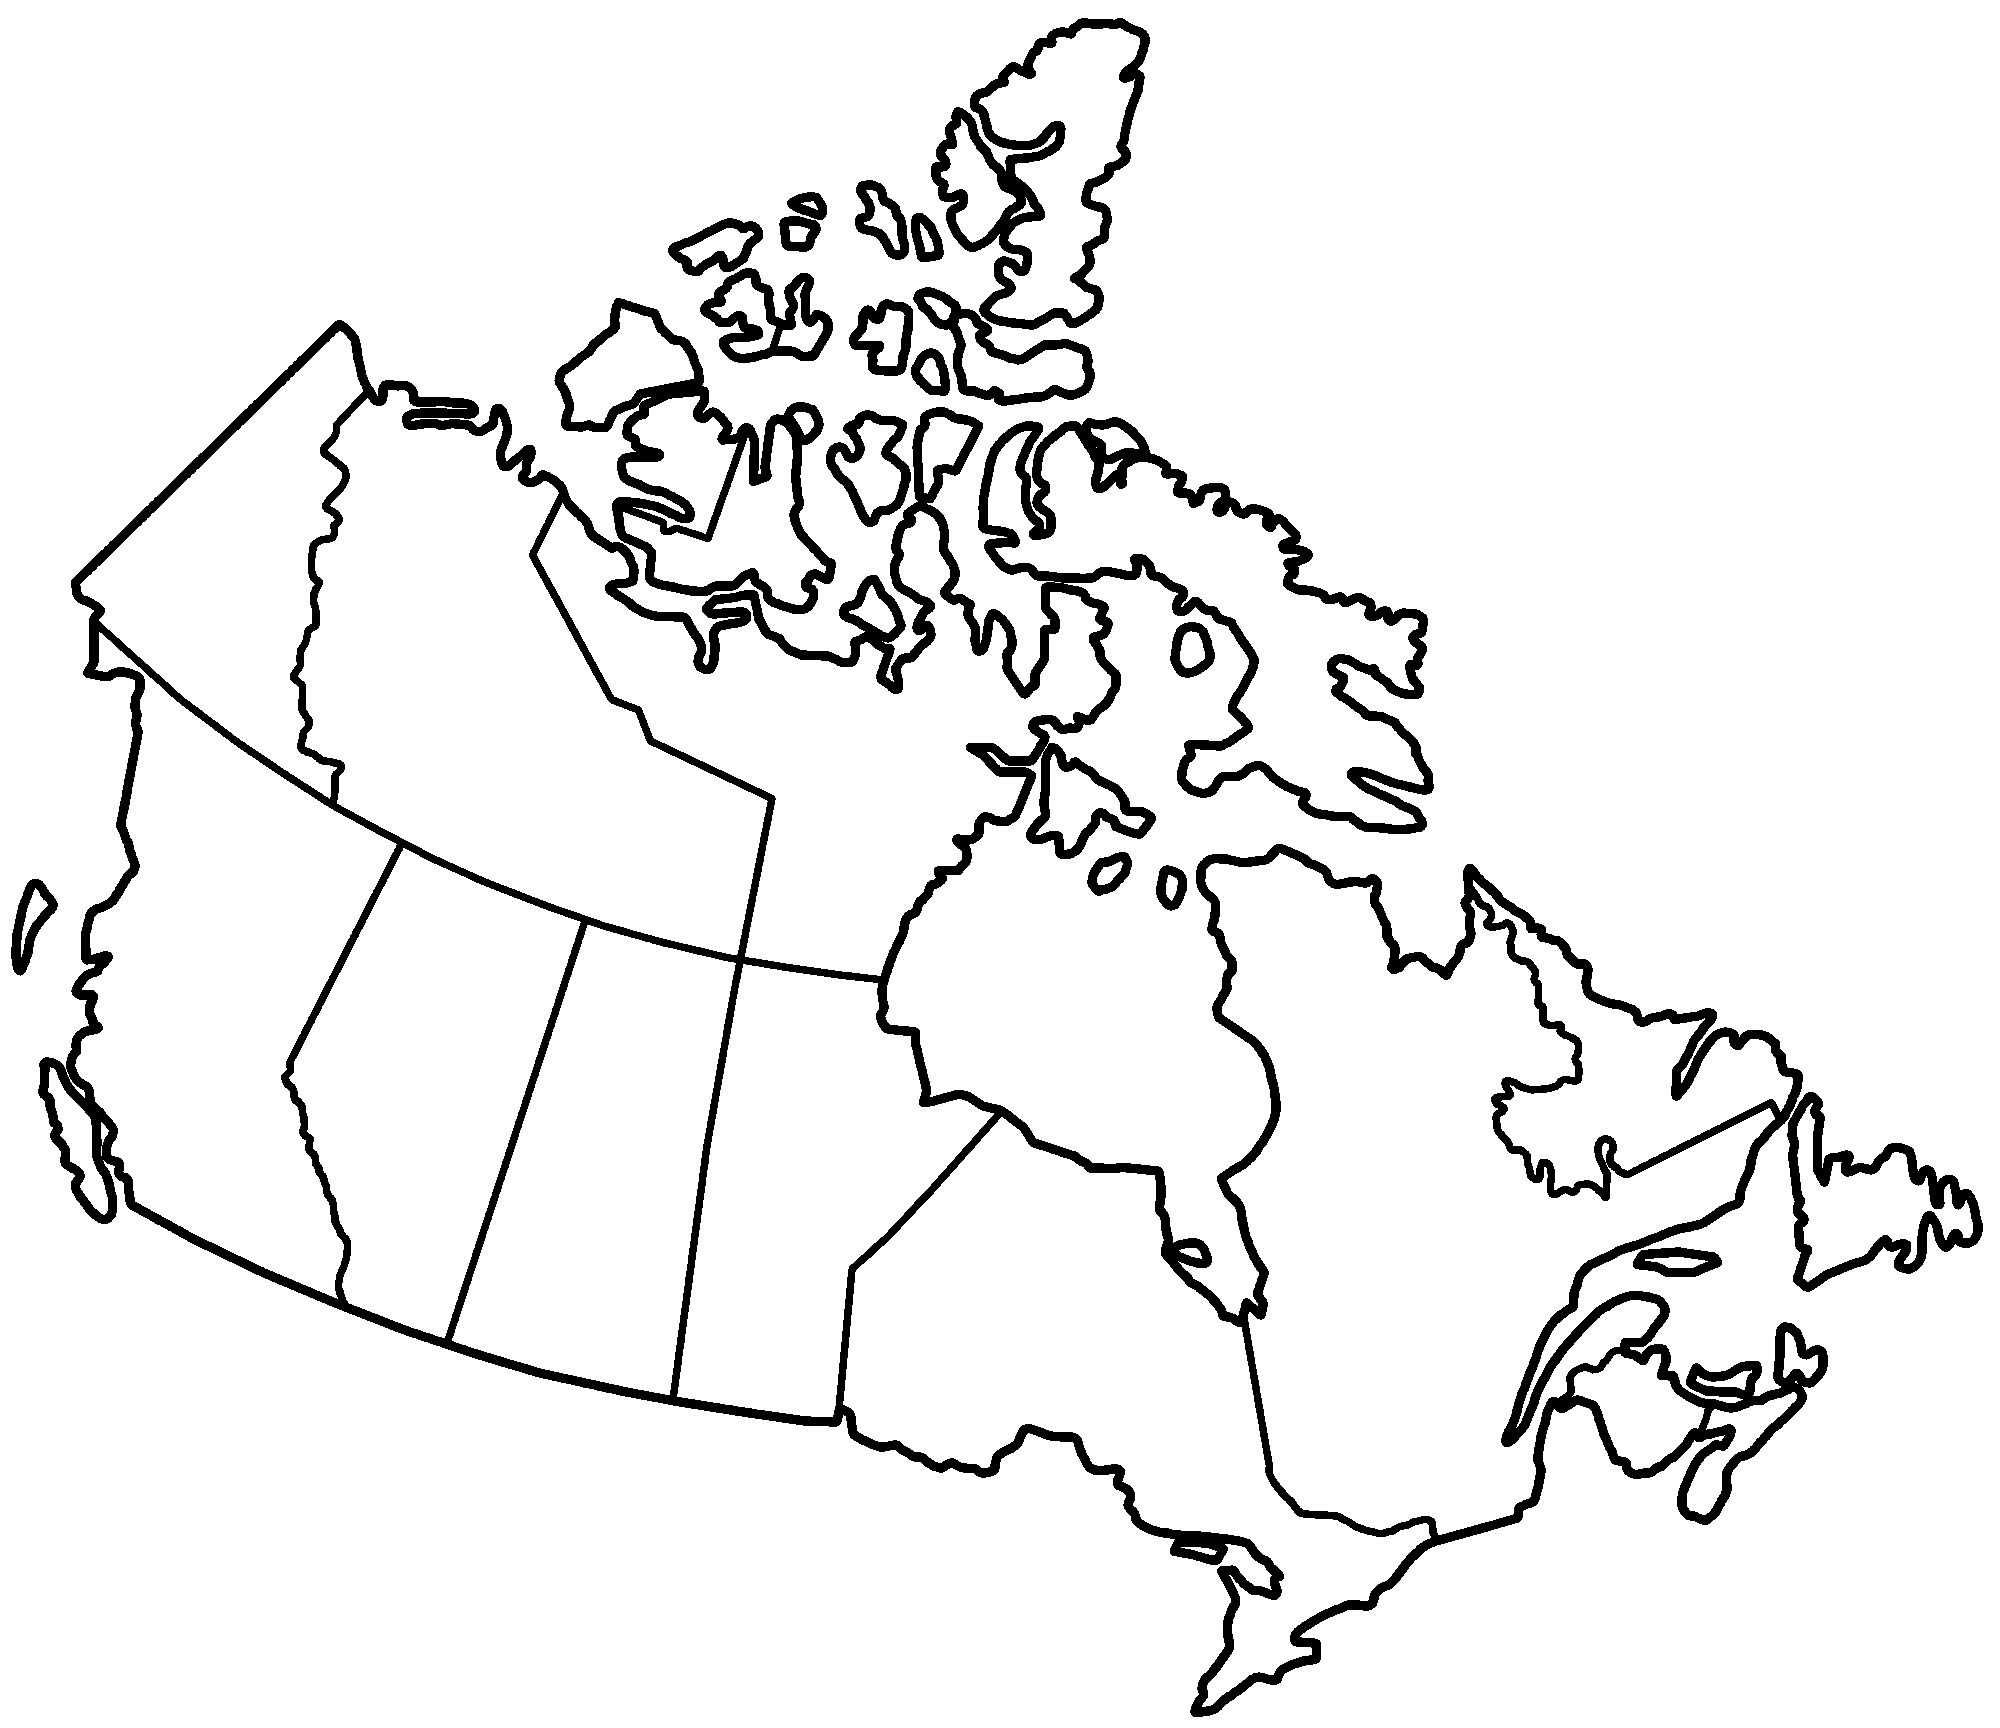 Map Of Canada Colouring Page At Getcolorings